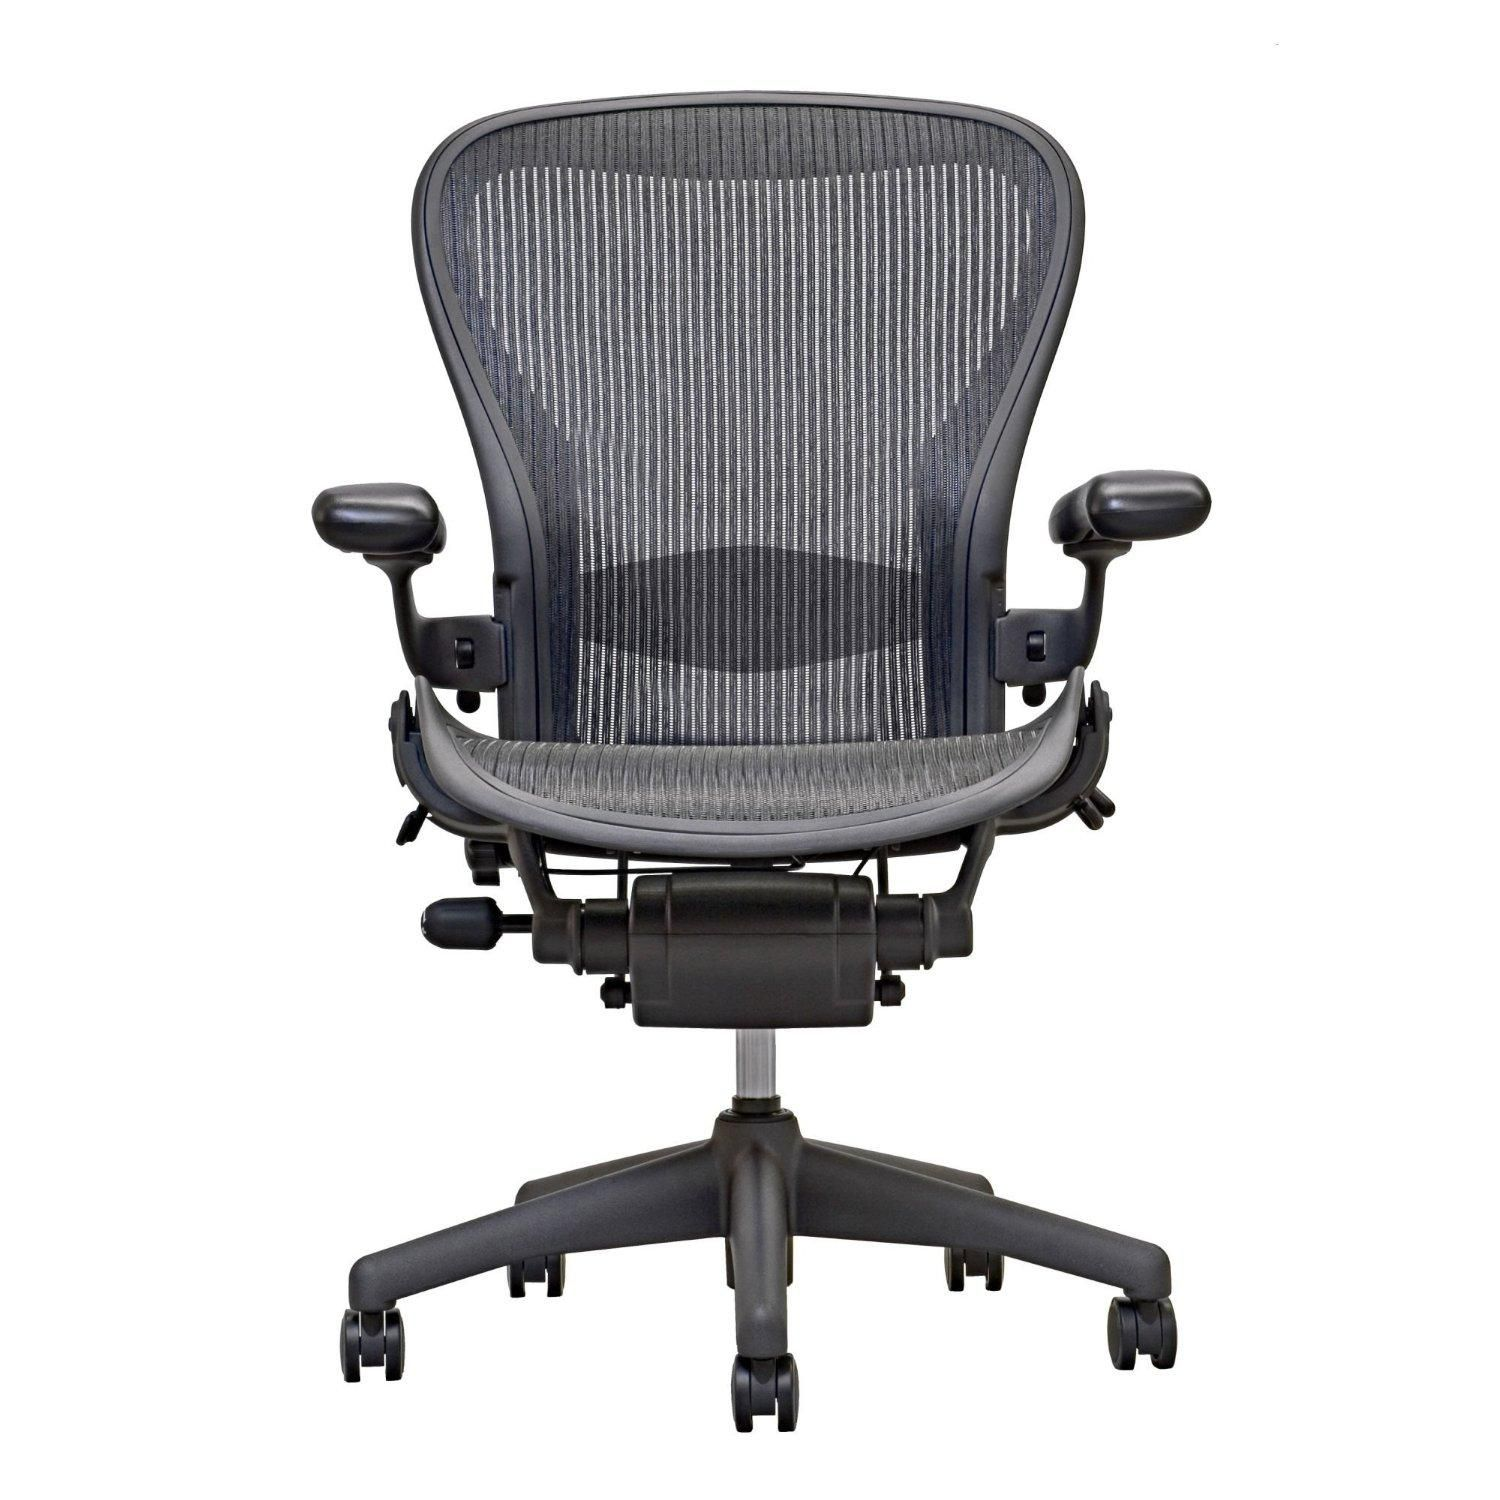 These Headrests Designed For The Herman Miller Aeron Chair Are So Easy To Attach And Give You Better S Best Office Chair Aeron Office Chair Office Chair Design